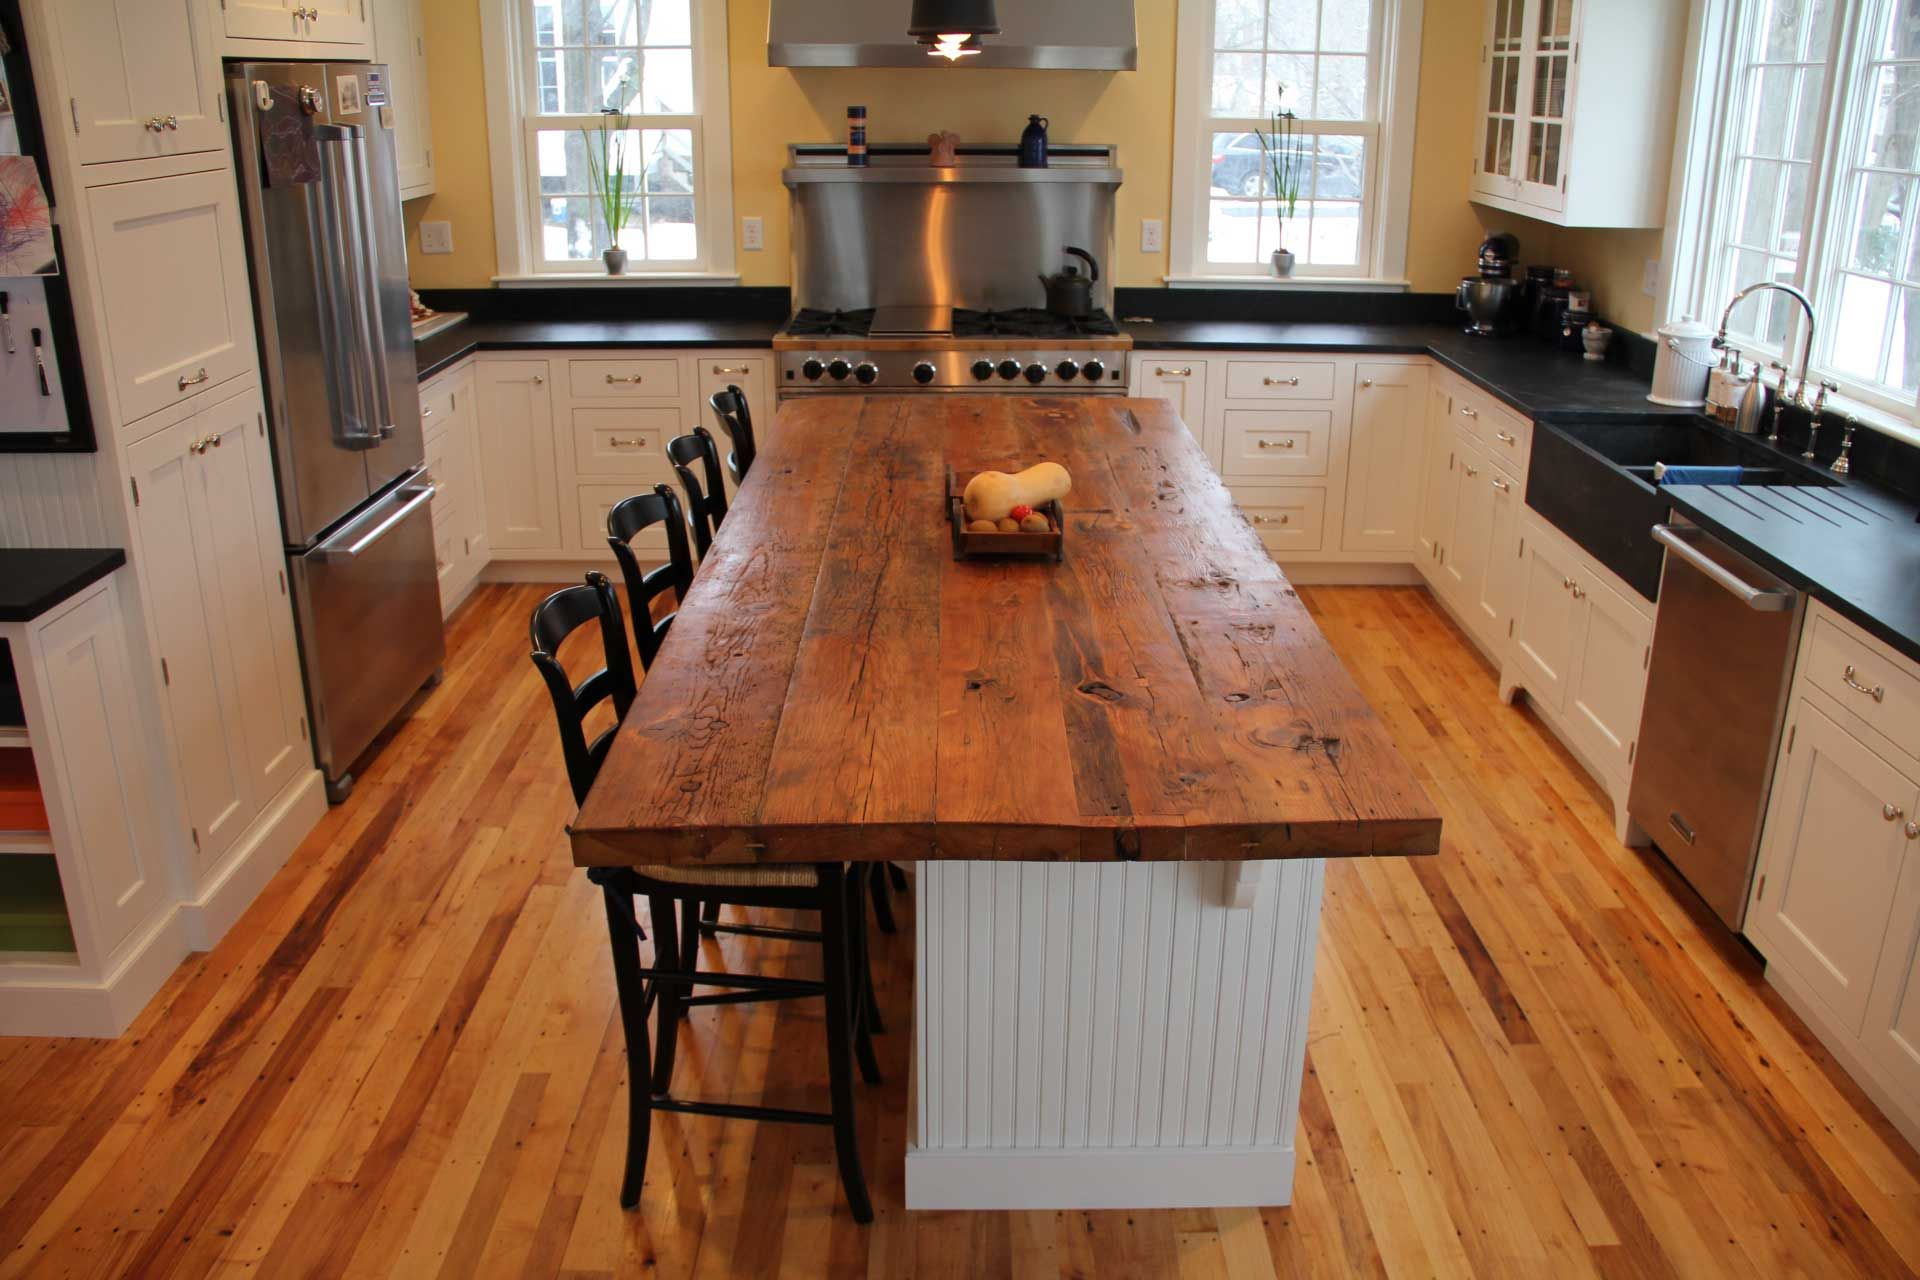 Amazing Stylish Oak Wooden Countertop Kitchen Island With Black